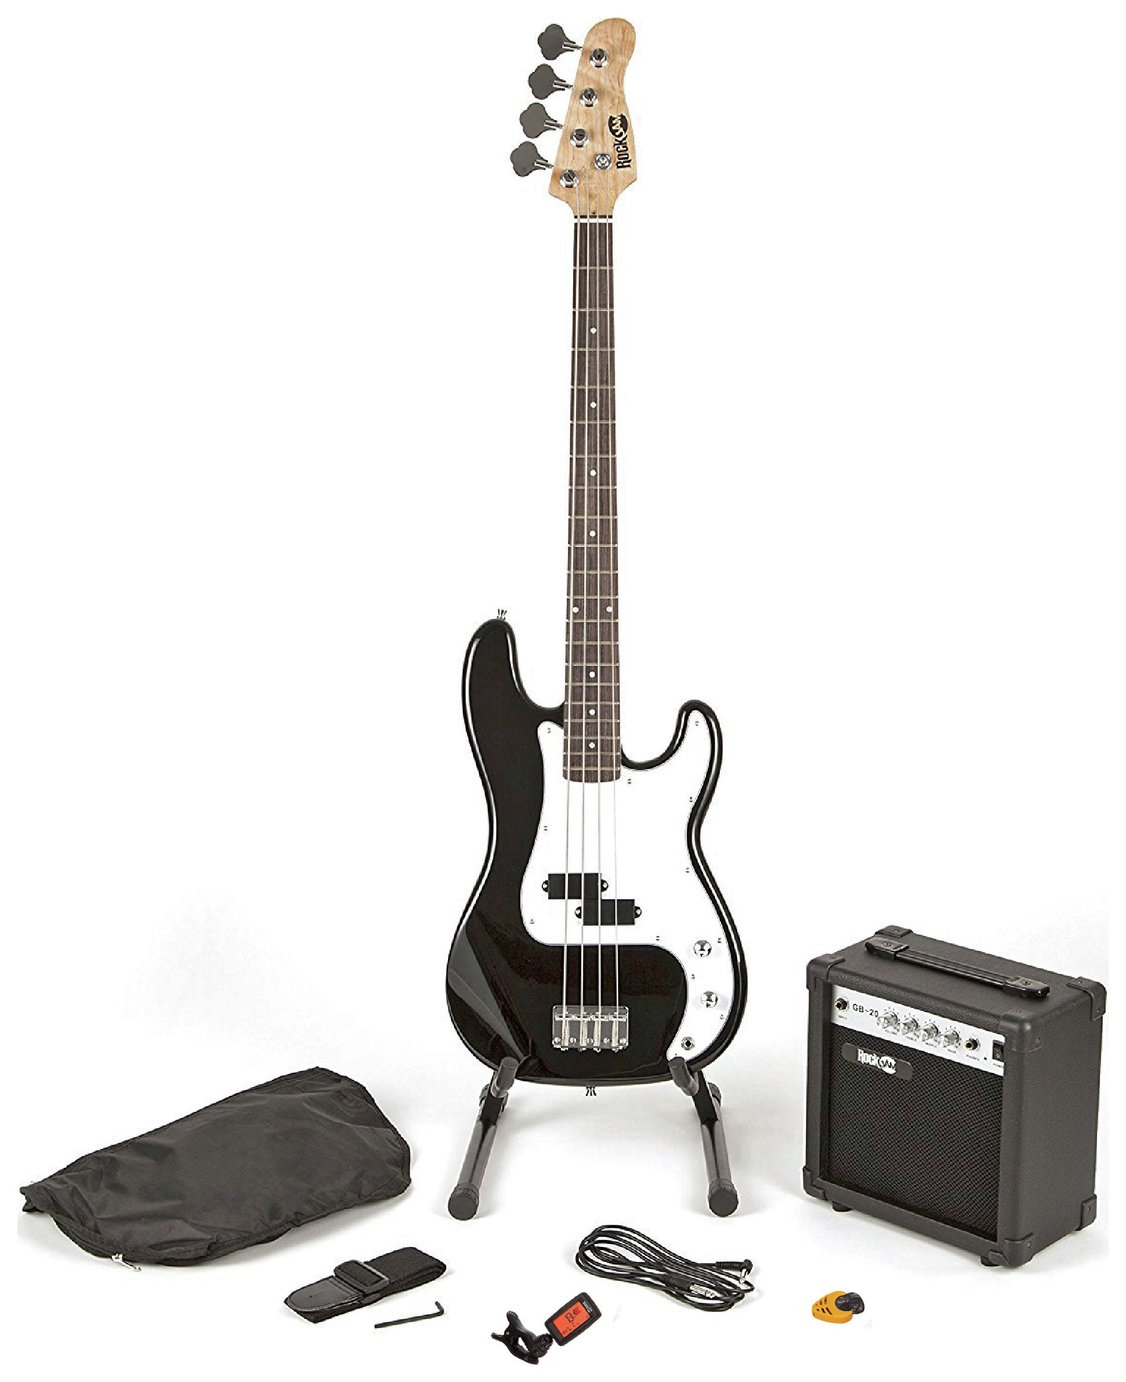 RockJam Electric Bass Guitar Kit With Amp & Tuner - Sunburst